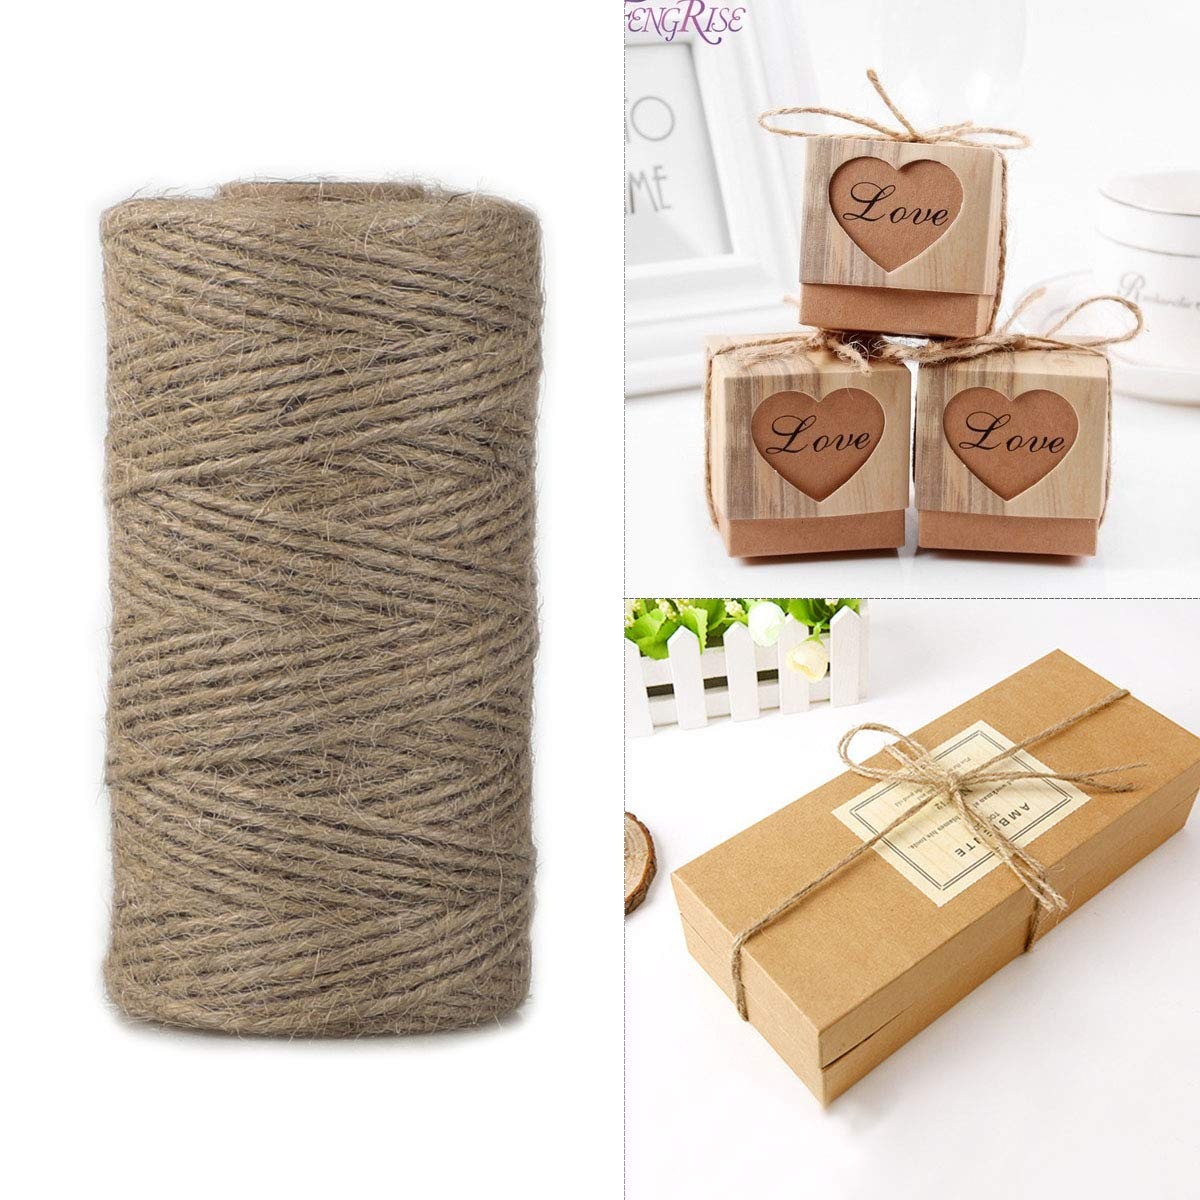 SanGlory Natural Jute Twine String,3Pcsx328 Feet Arts Crafts Gift Twine 3Ply Jute String Rope 2mm Heavy Duty Industrial Packing String for Christmas,Festive,Gardening Applications and DIY Decoration